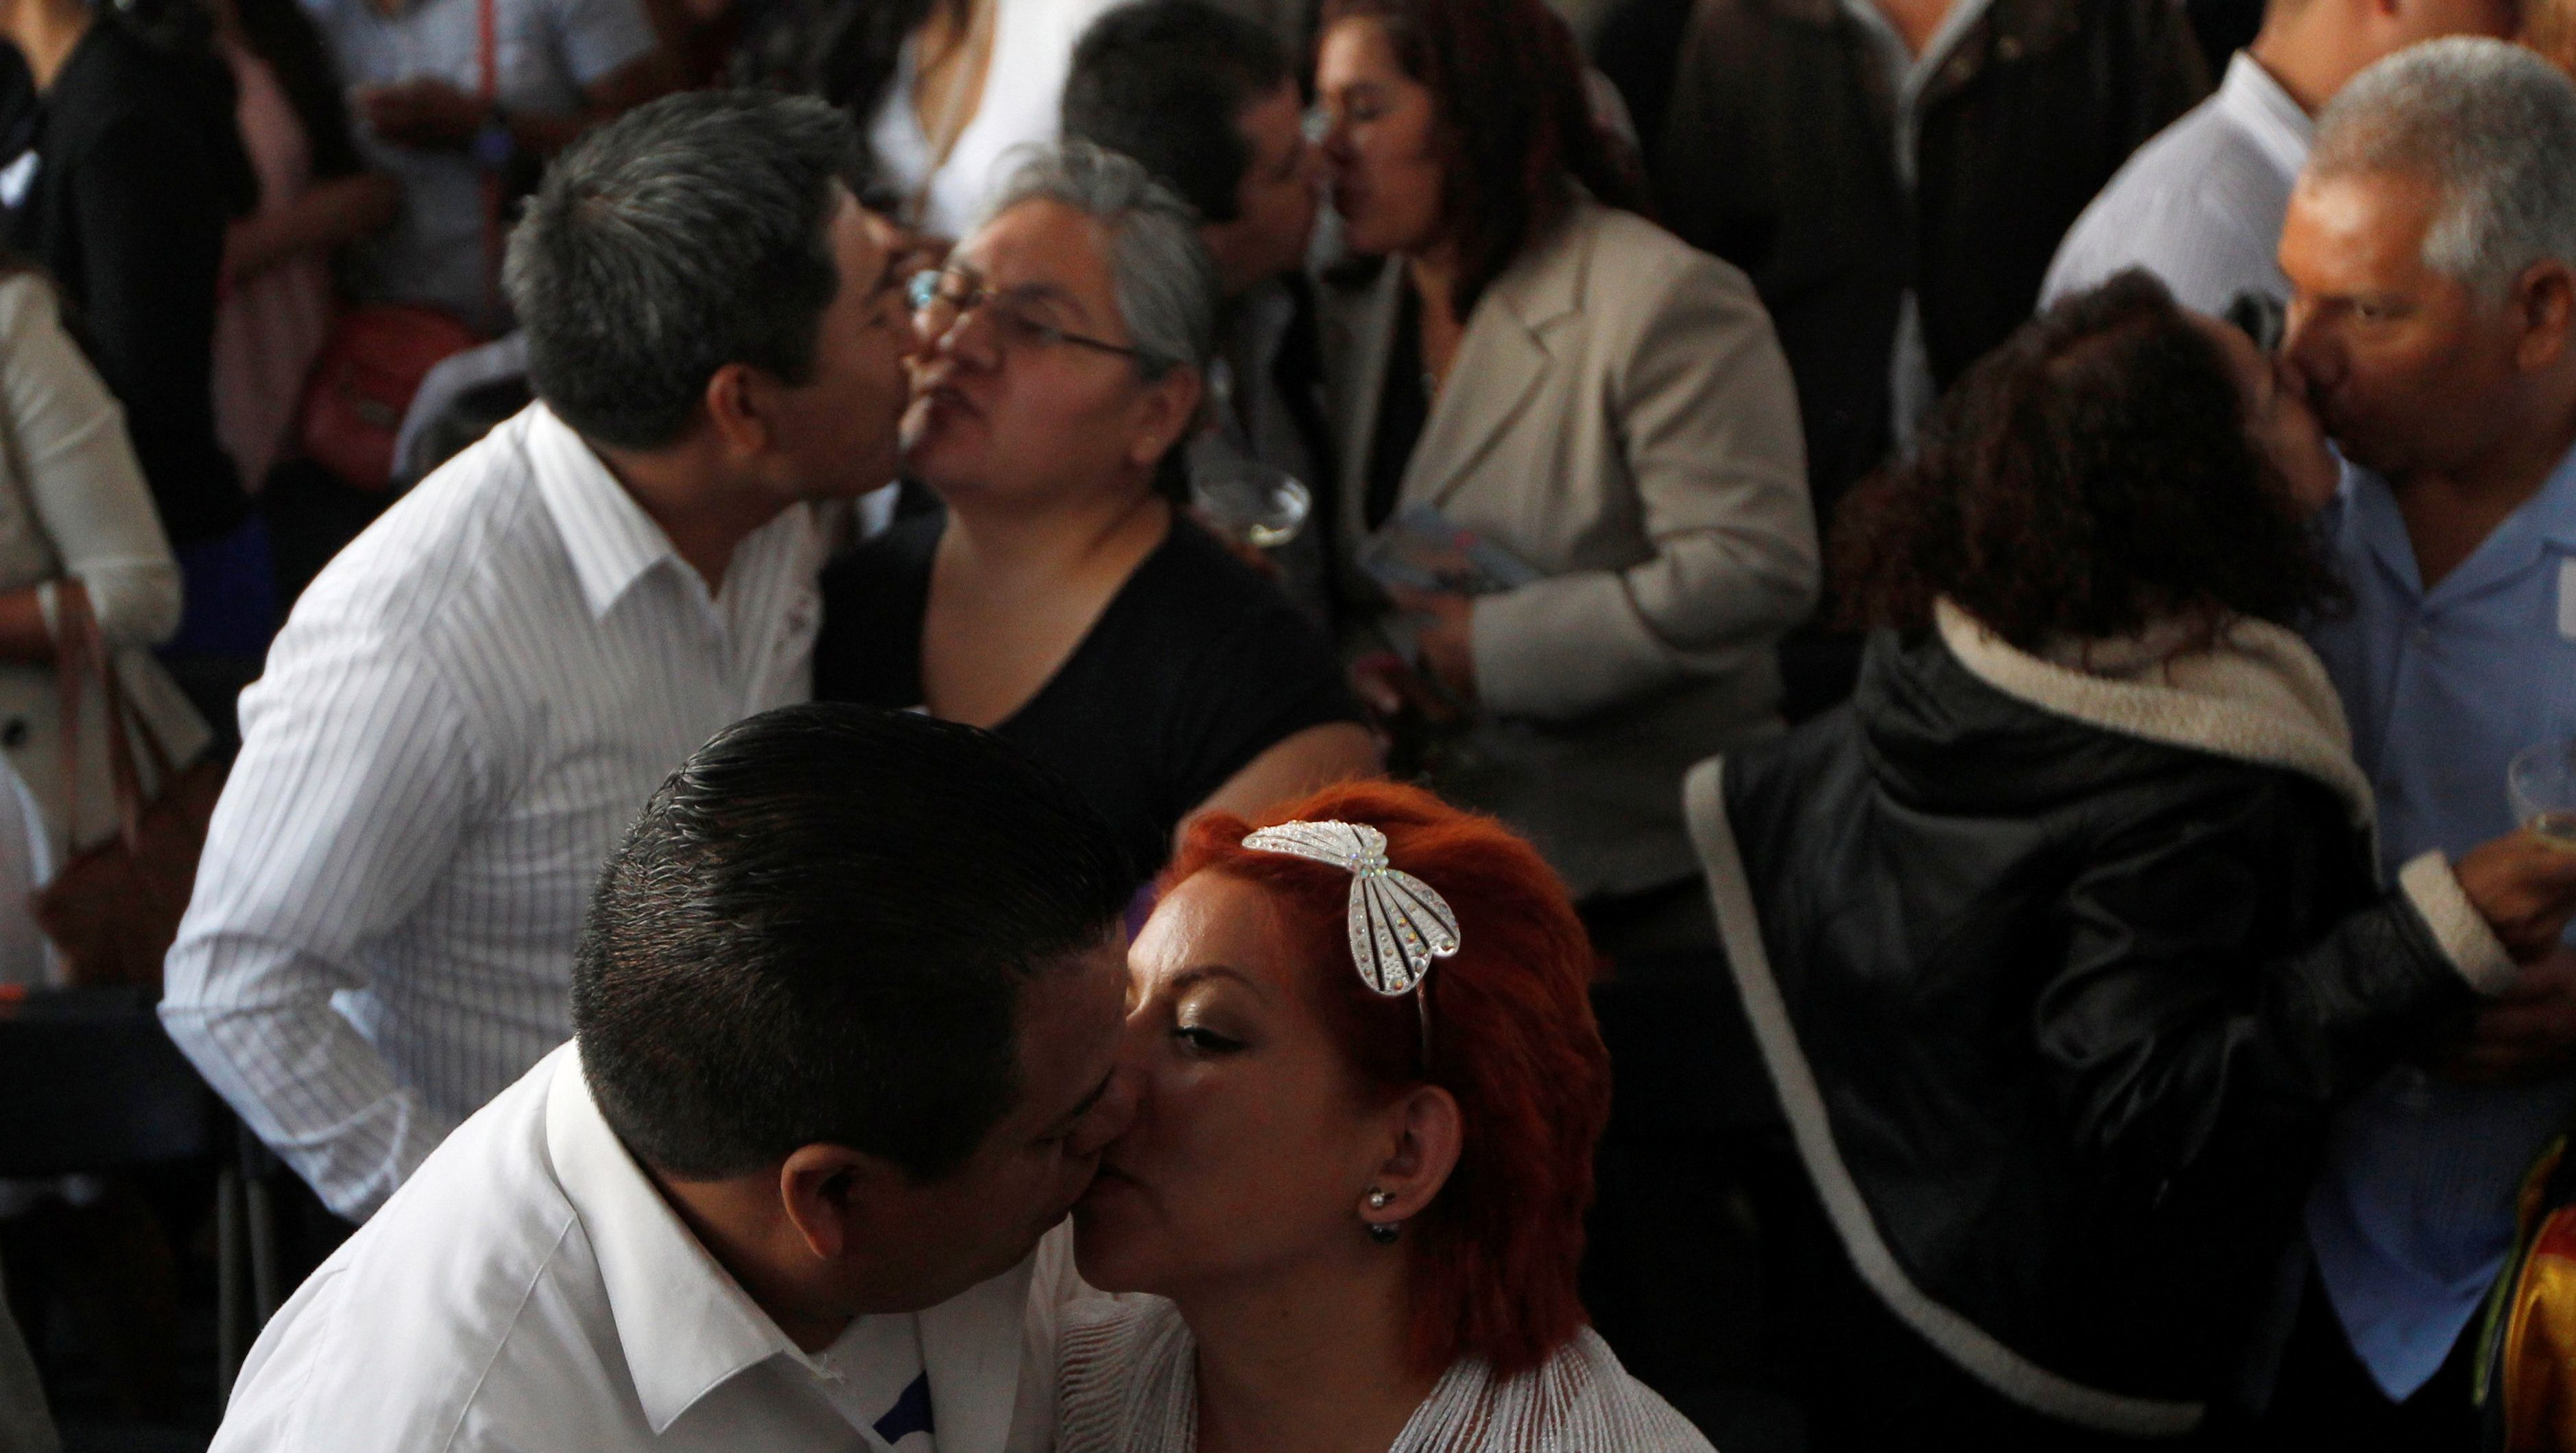 Newly-wed couples kiss during a mass wedding ceremony in which 3,400 couples participated, at Zocalo square in Mexico City, Mexico March 25, 2017.